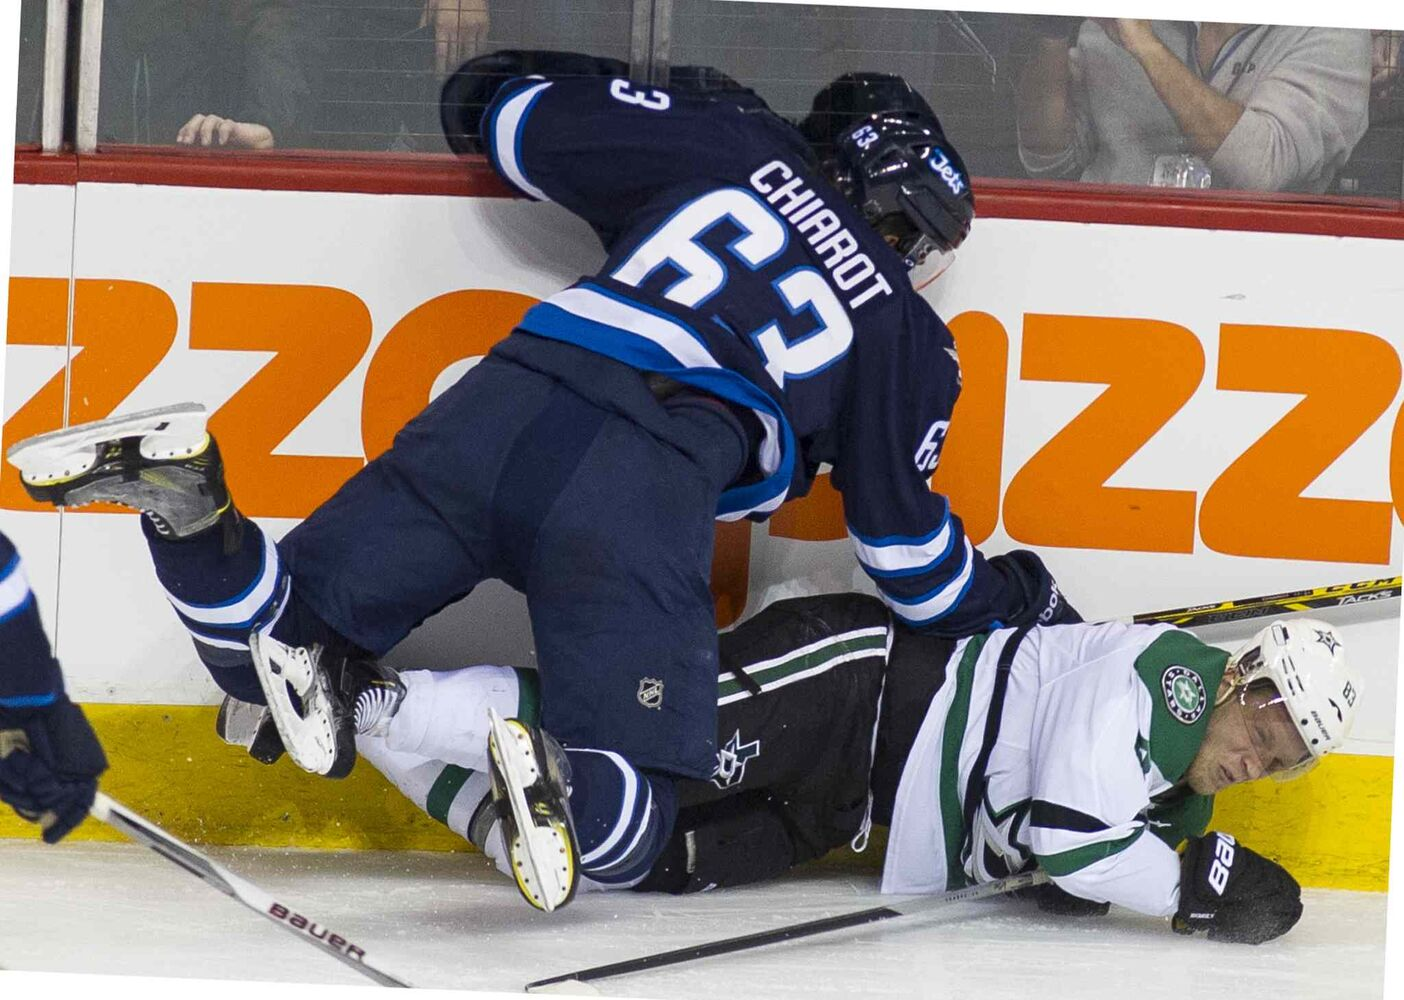 Dallas Stars Ales Hemsky (#83) is taken down by Winnipeg Jets Ben Chiarot (#63) during first period. (DAVID LIPNOWSKI / WINNIPEG FREE PRESS)